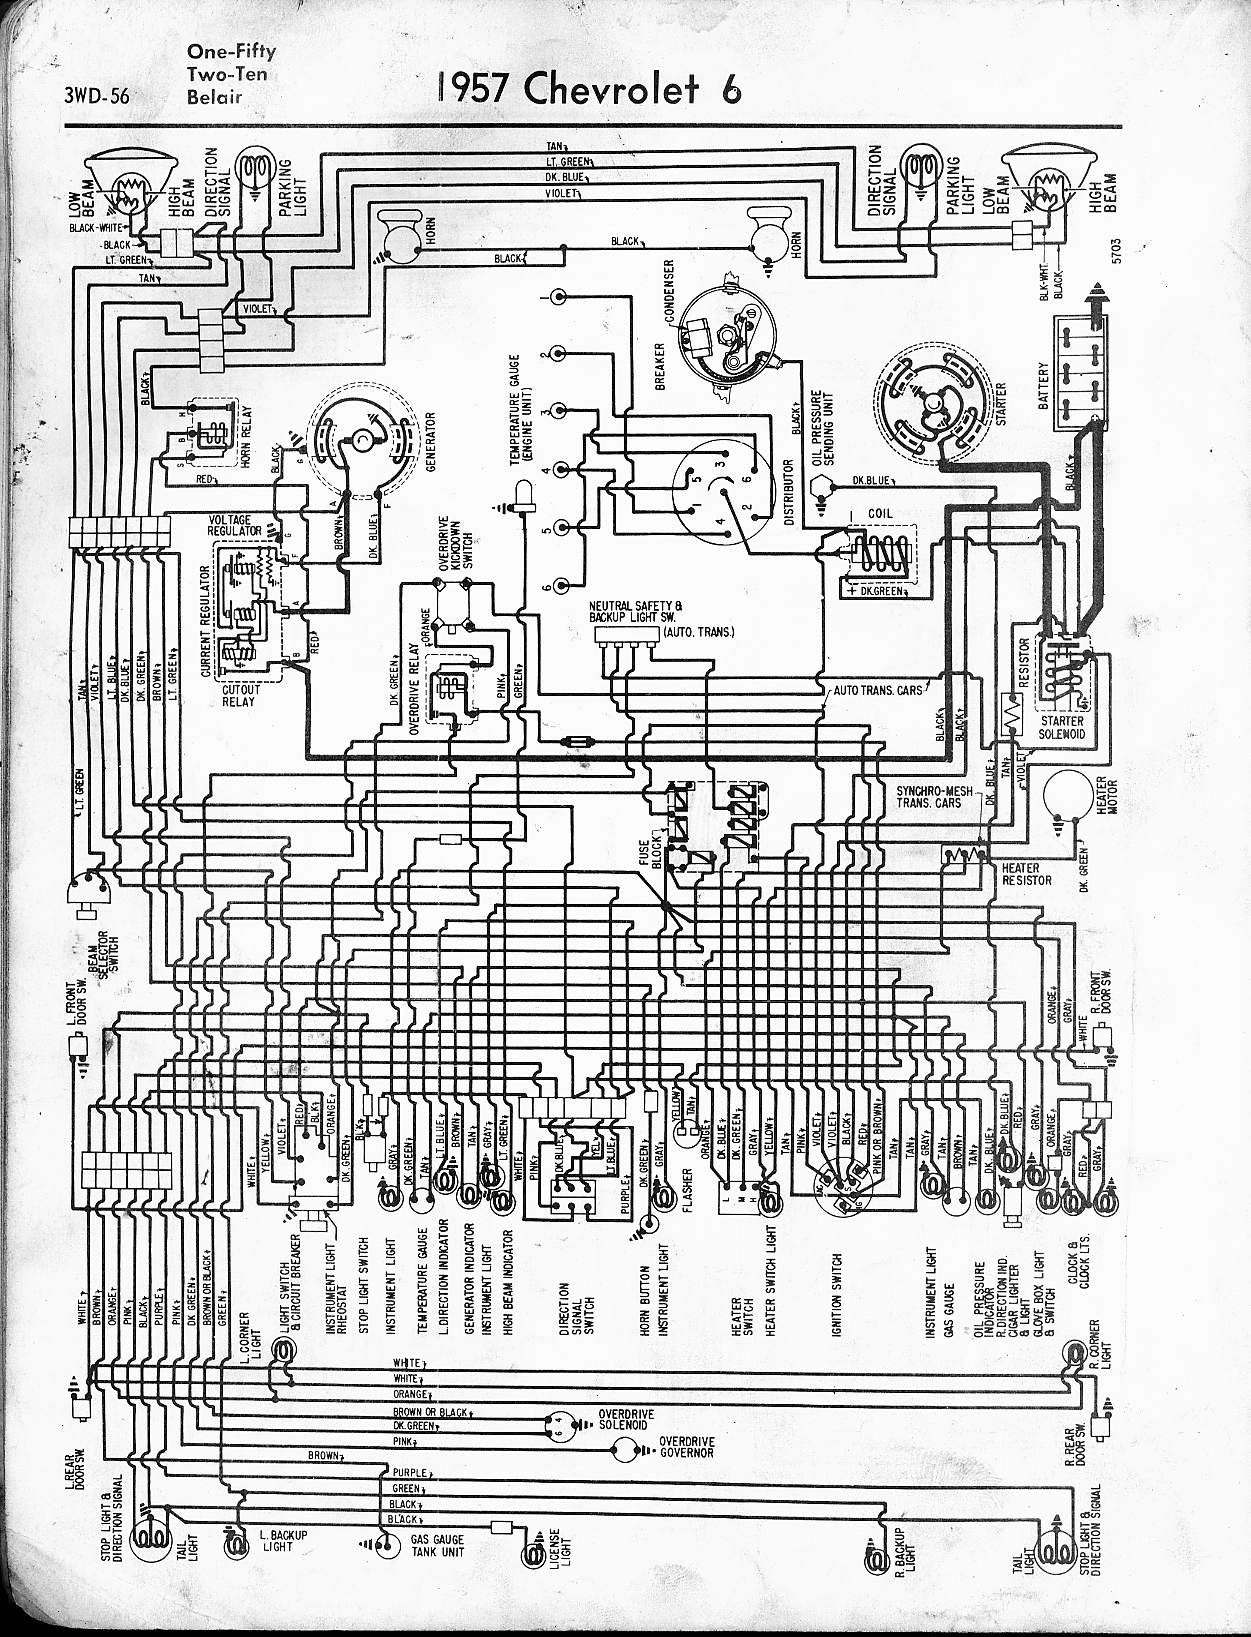 hight resolution of 57 65 chevy wiring diagrams subaru wiring harness diagram 1957 chevy wiring harness diagram